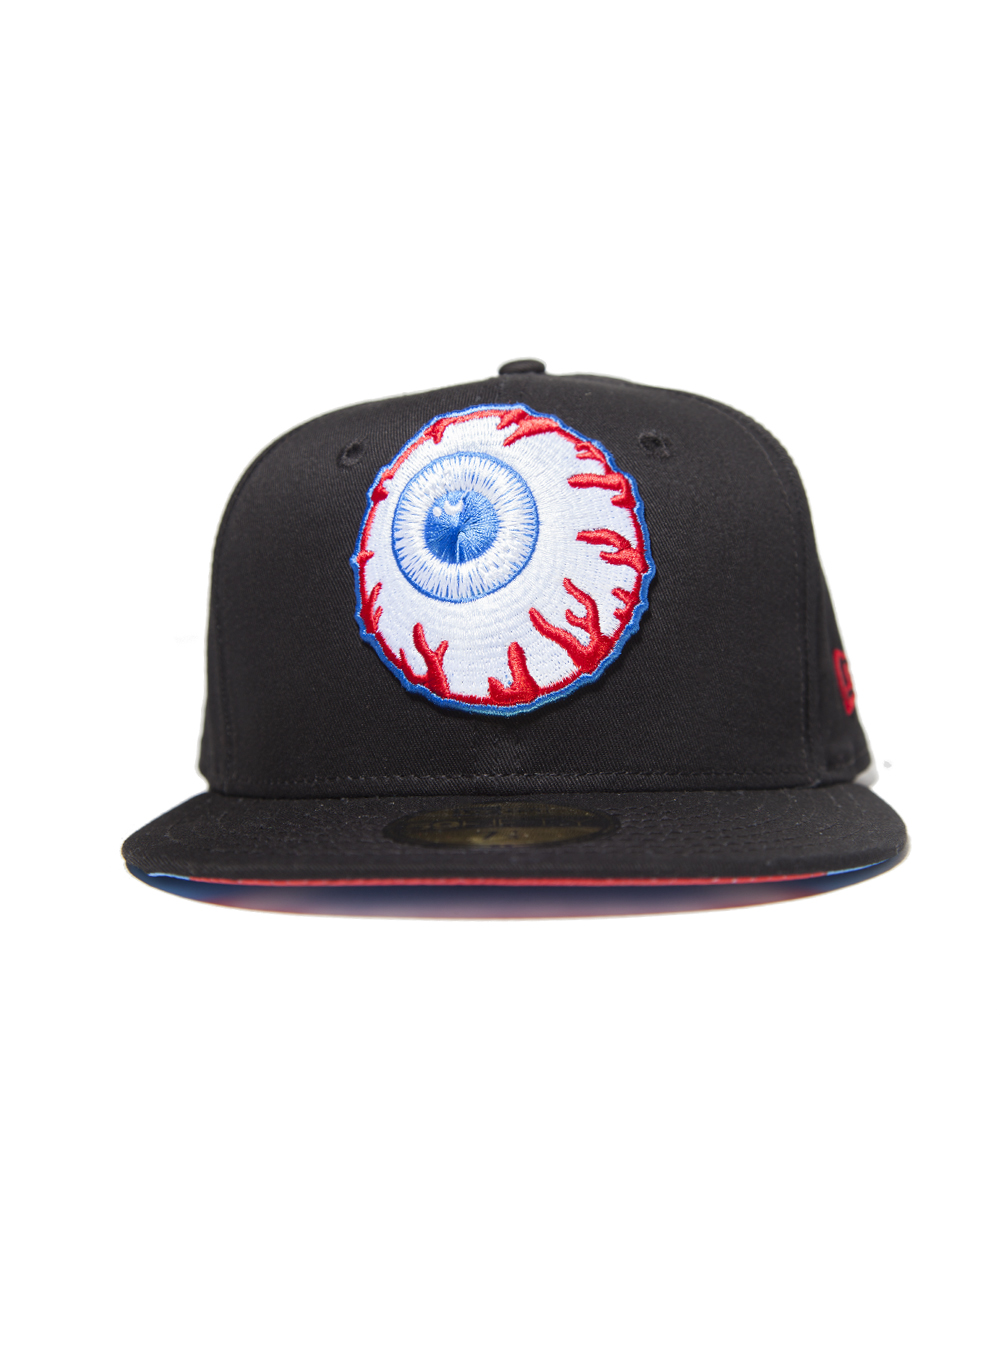 Heritage Keep Watch New Era 5950